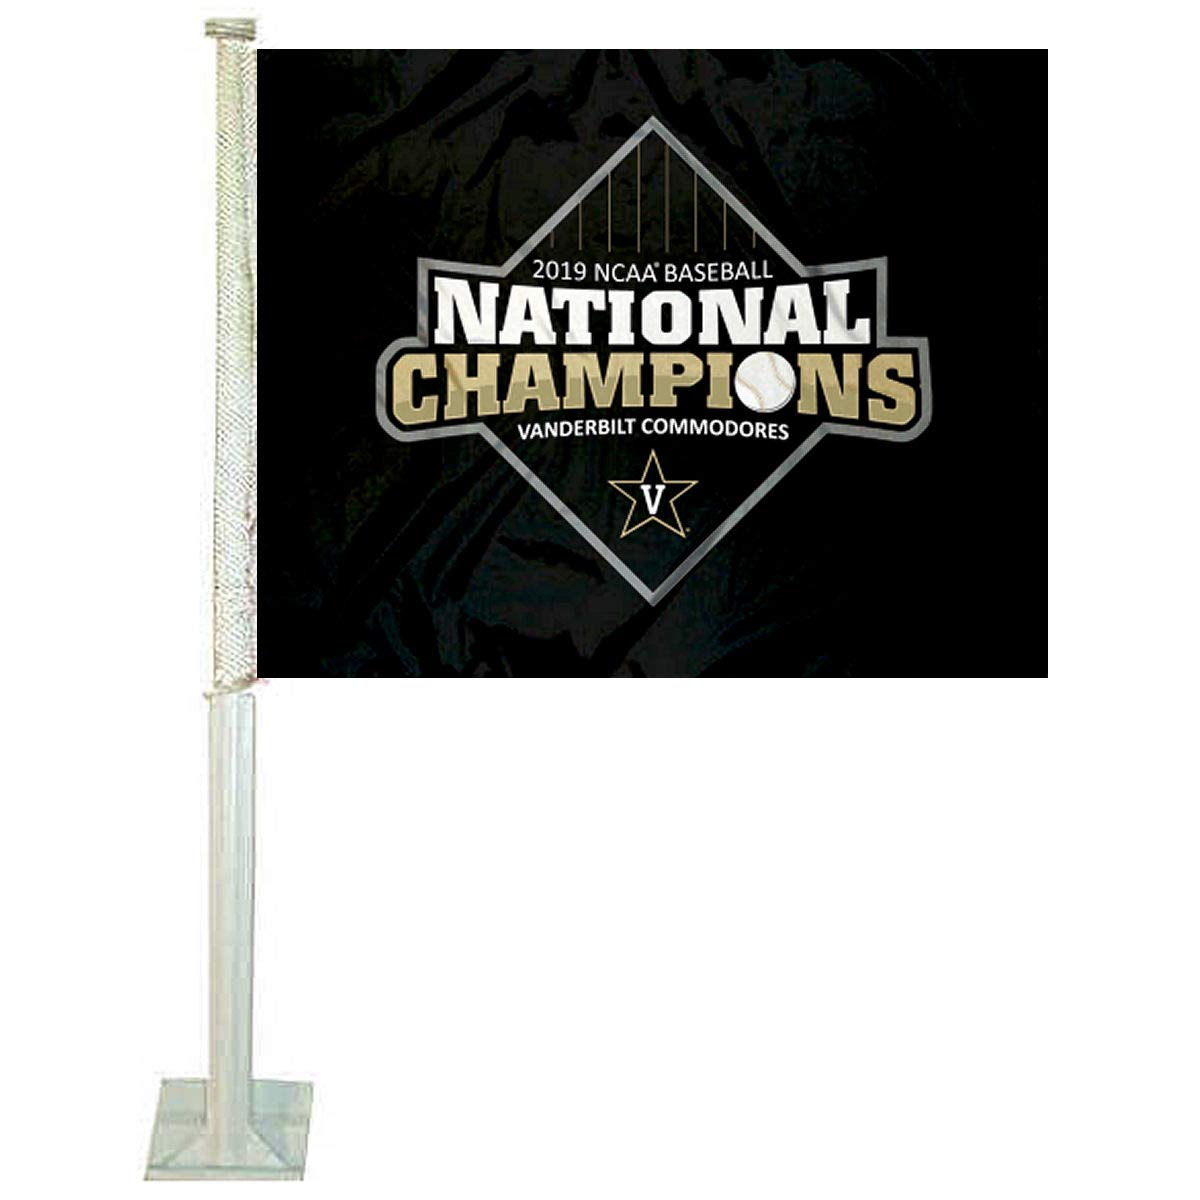 Vanderbilt Commodores 2019 Baseball National Champions Car Flag College Flags and Banners Co